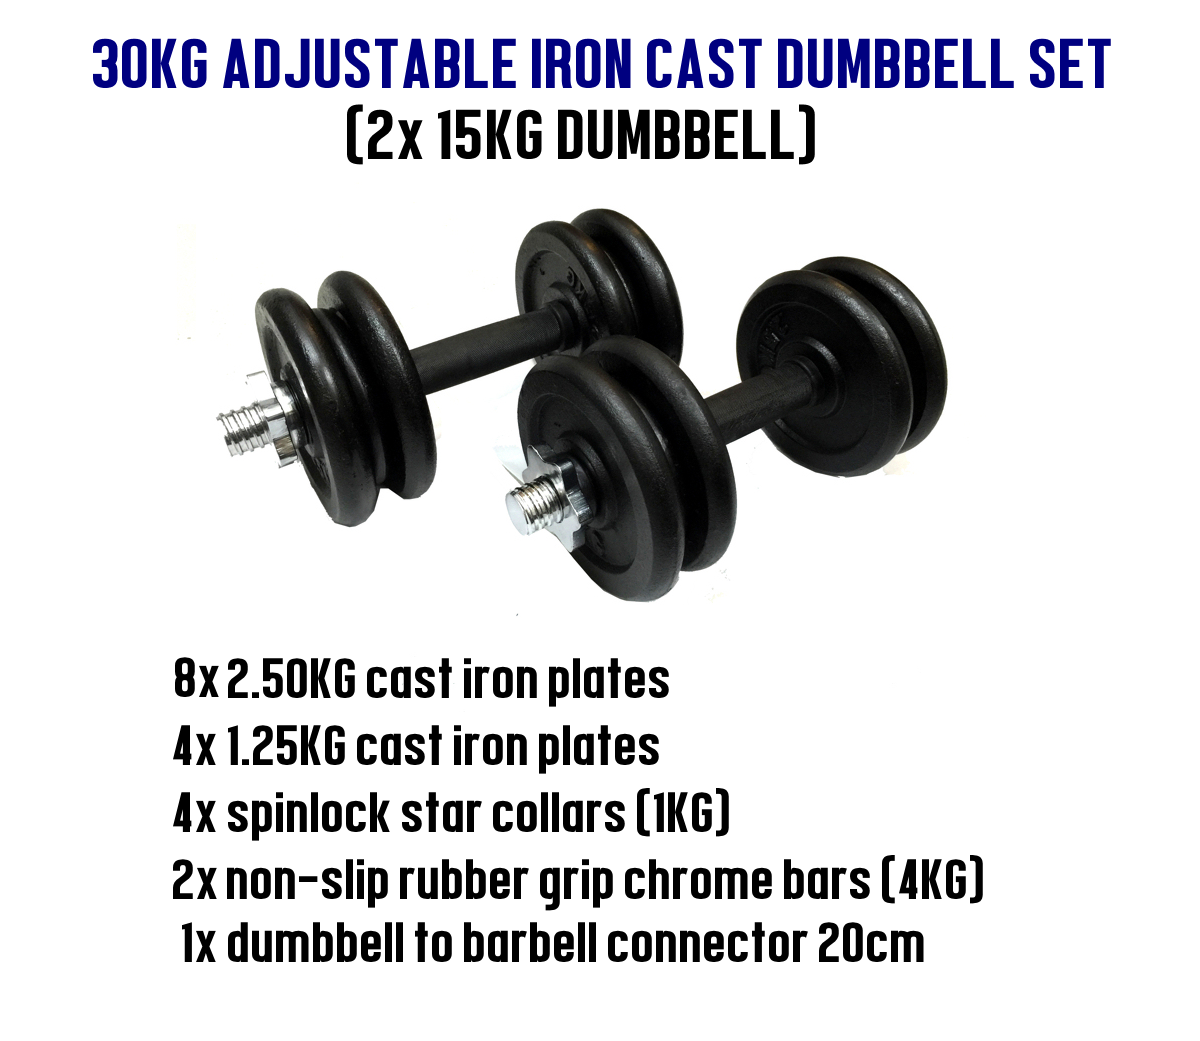 York 30kg Dumbbell Set: 30KG Premium Iron Cast Dumbbell To Barbell Set Singapore